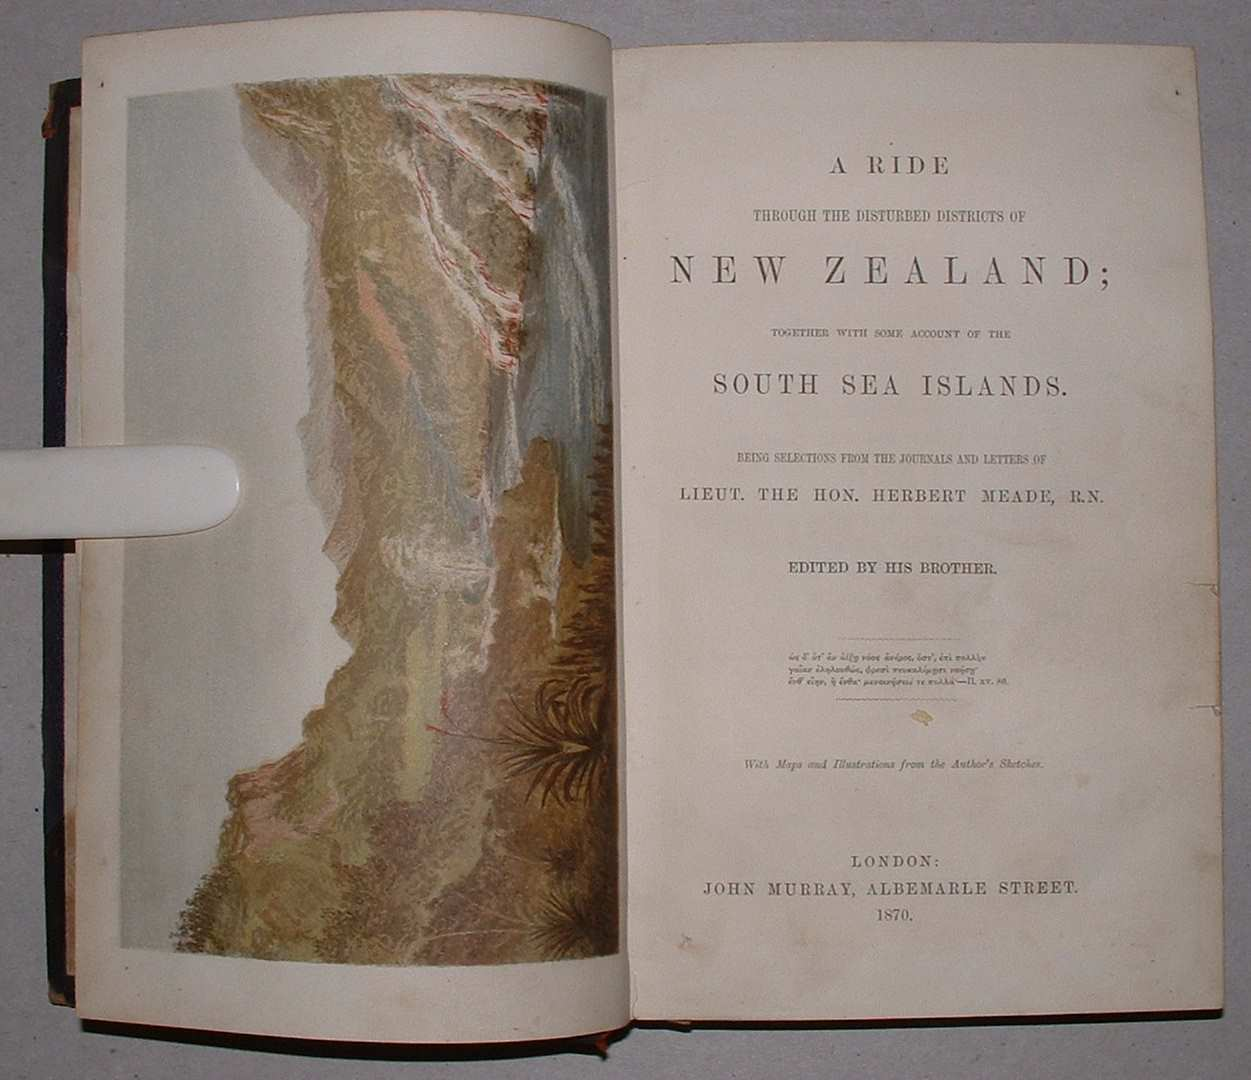 Image for A Ride Through the Disturbed Districts of New Zealand; Together with some account of the South Sea Islands